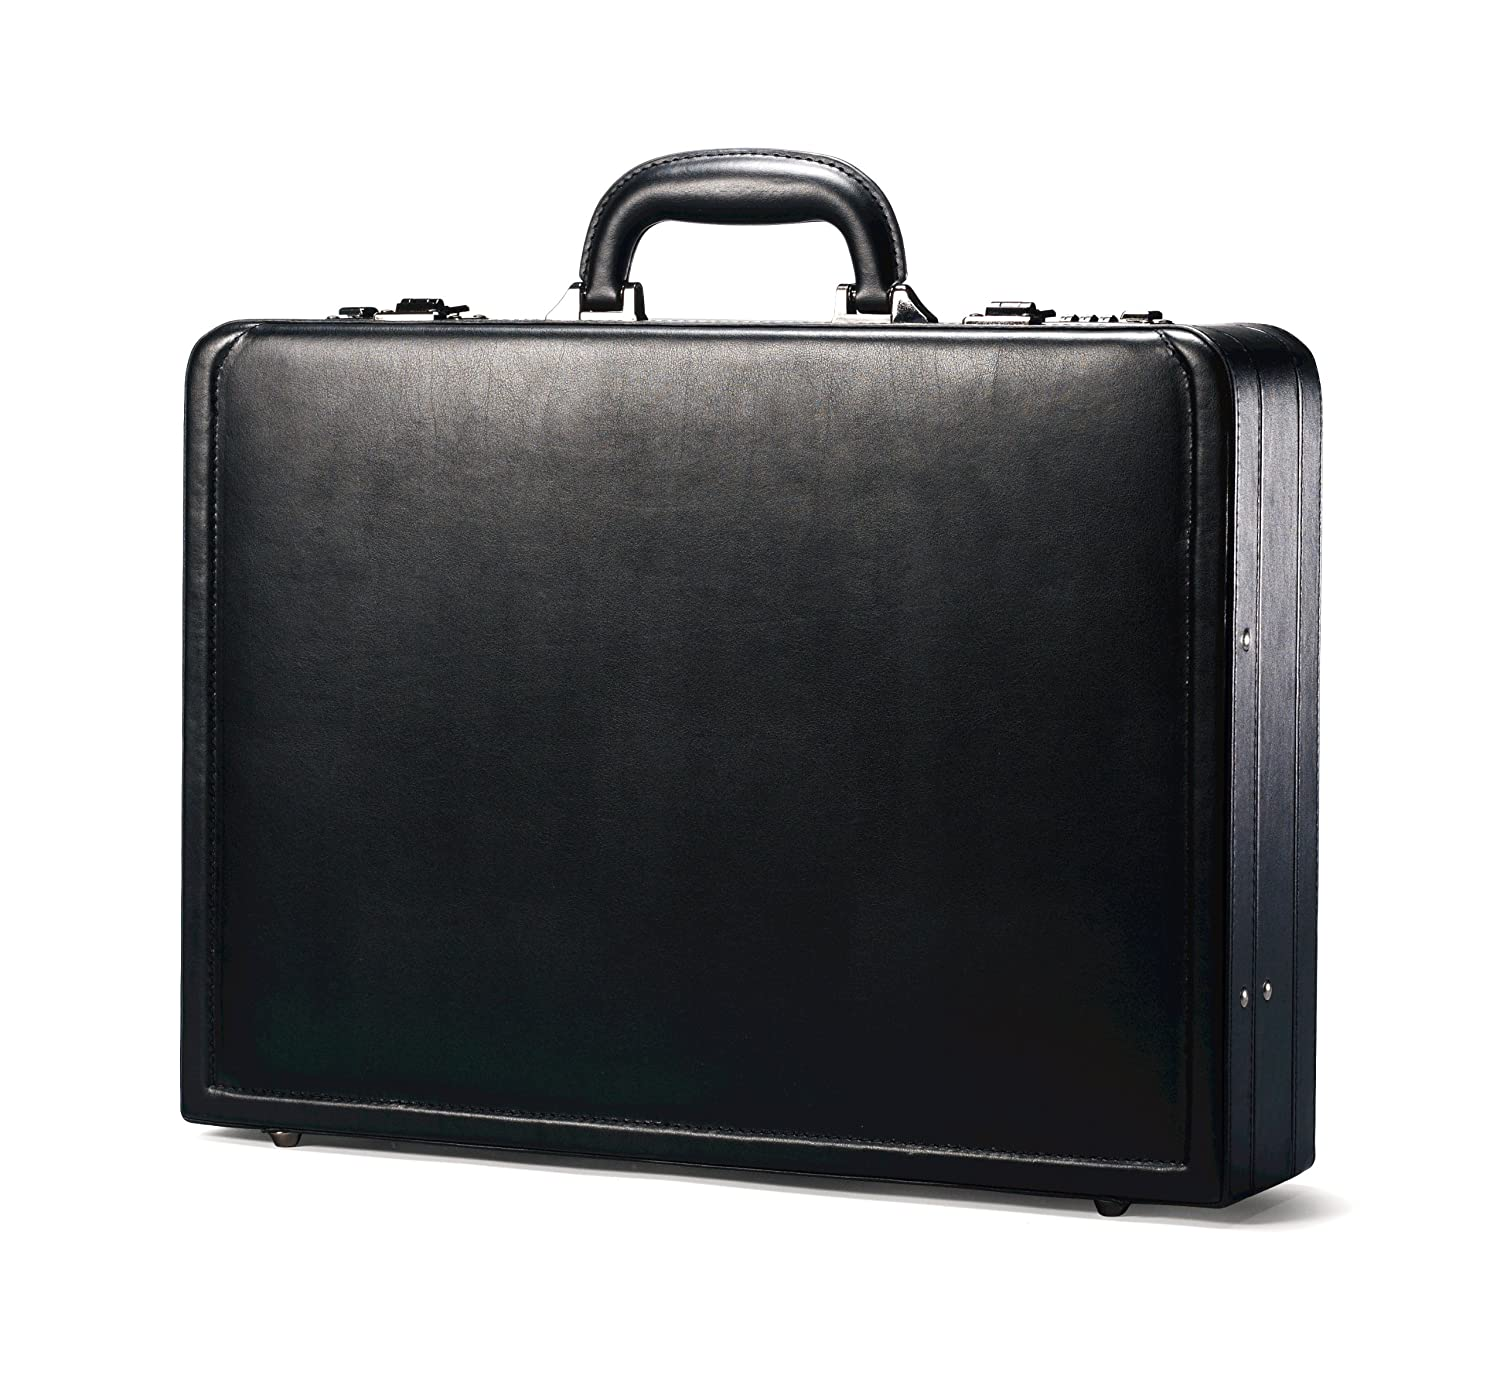 Samsonite Bonded Leather Attache, Black Samsonite Corporation 43115-1041